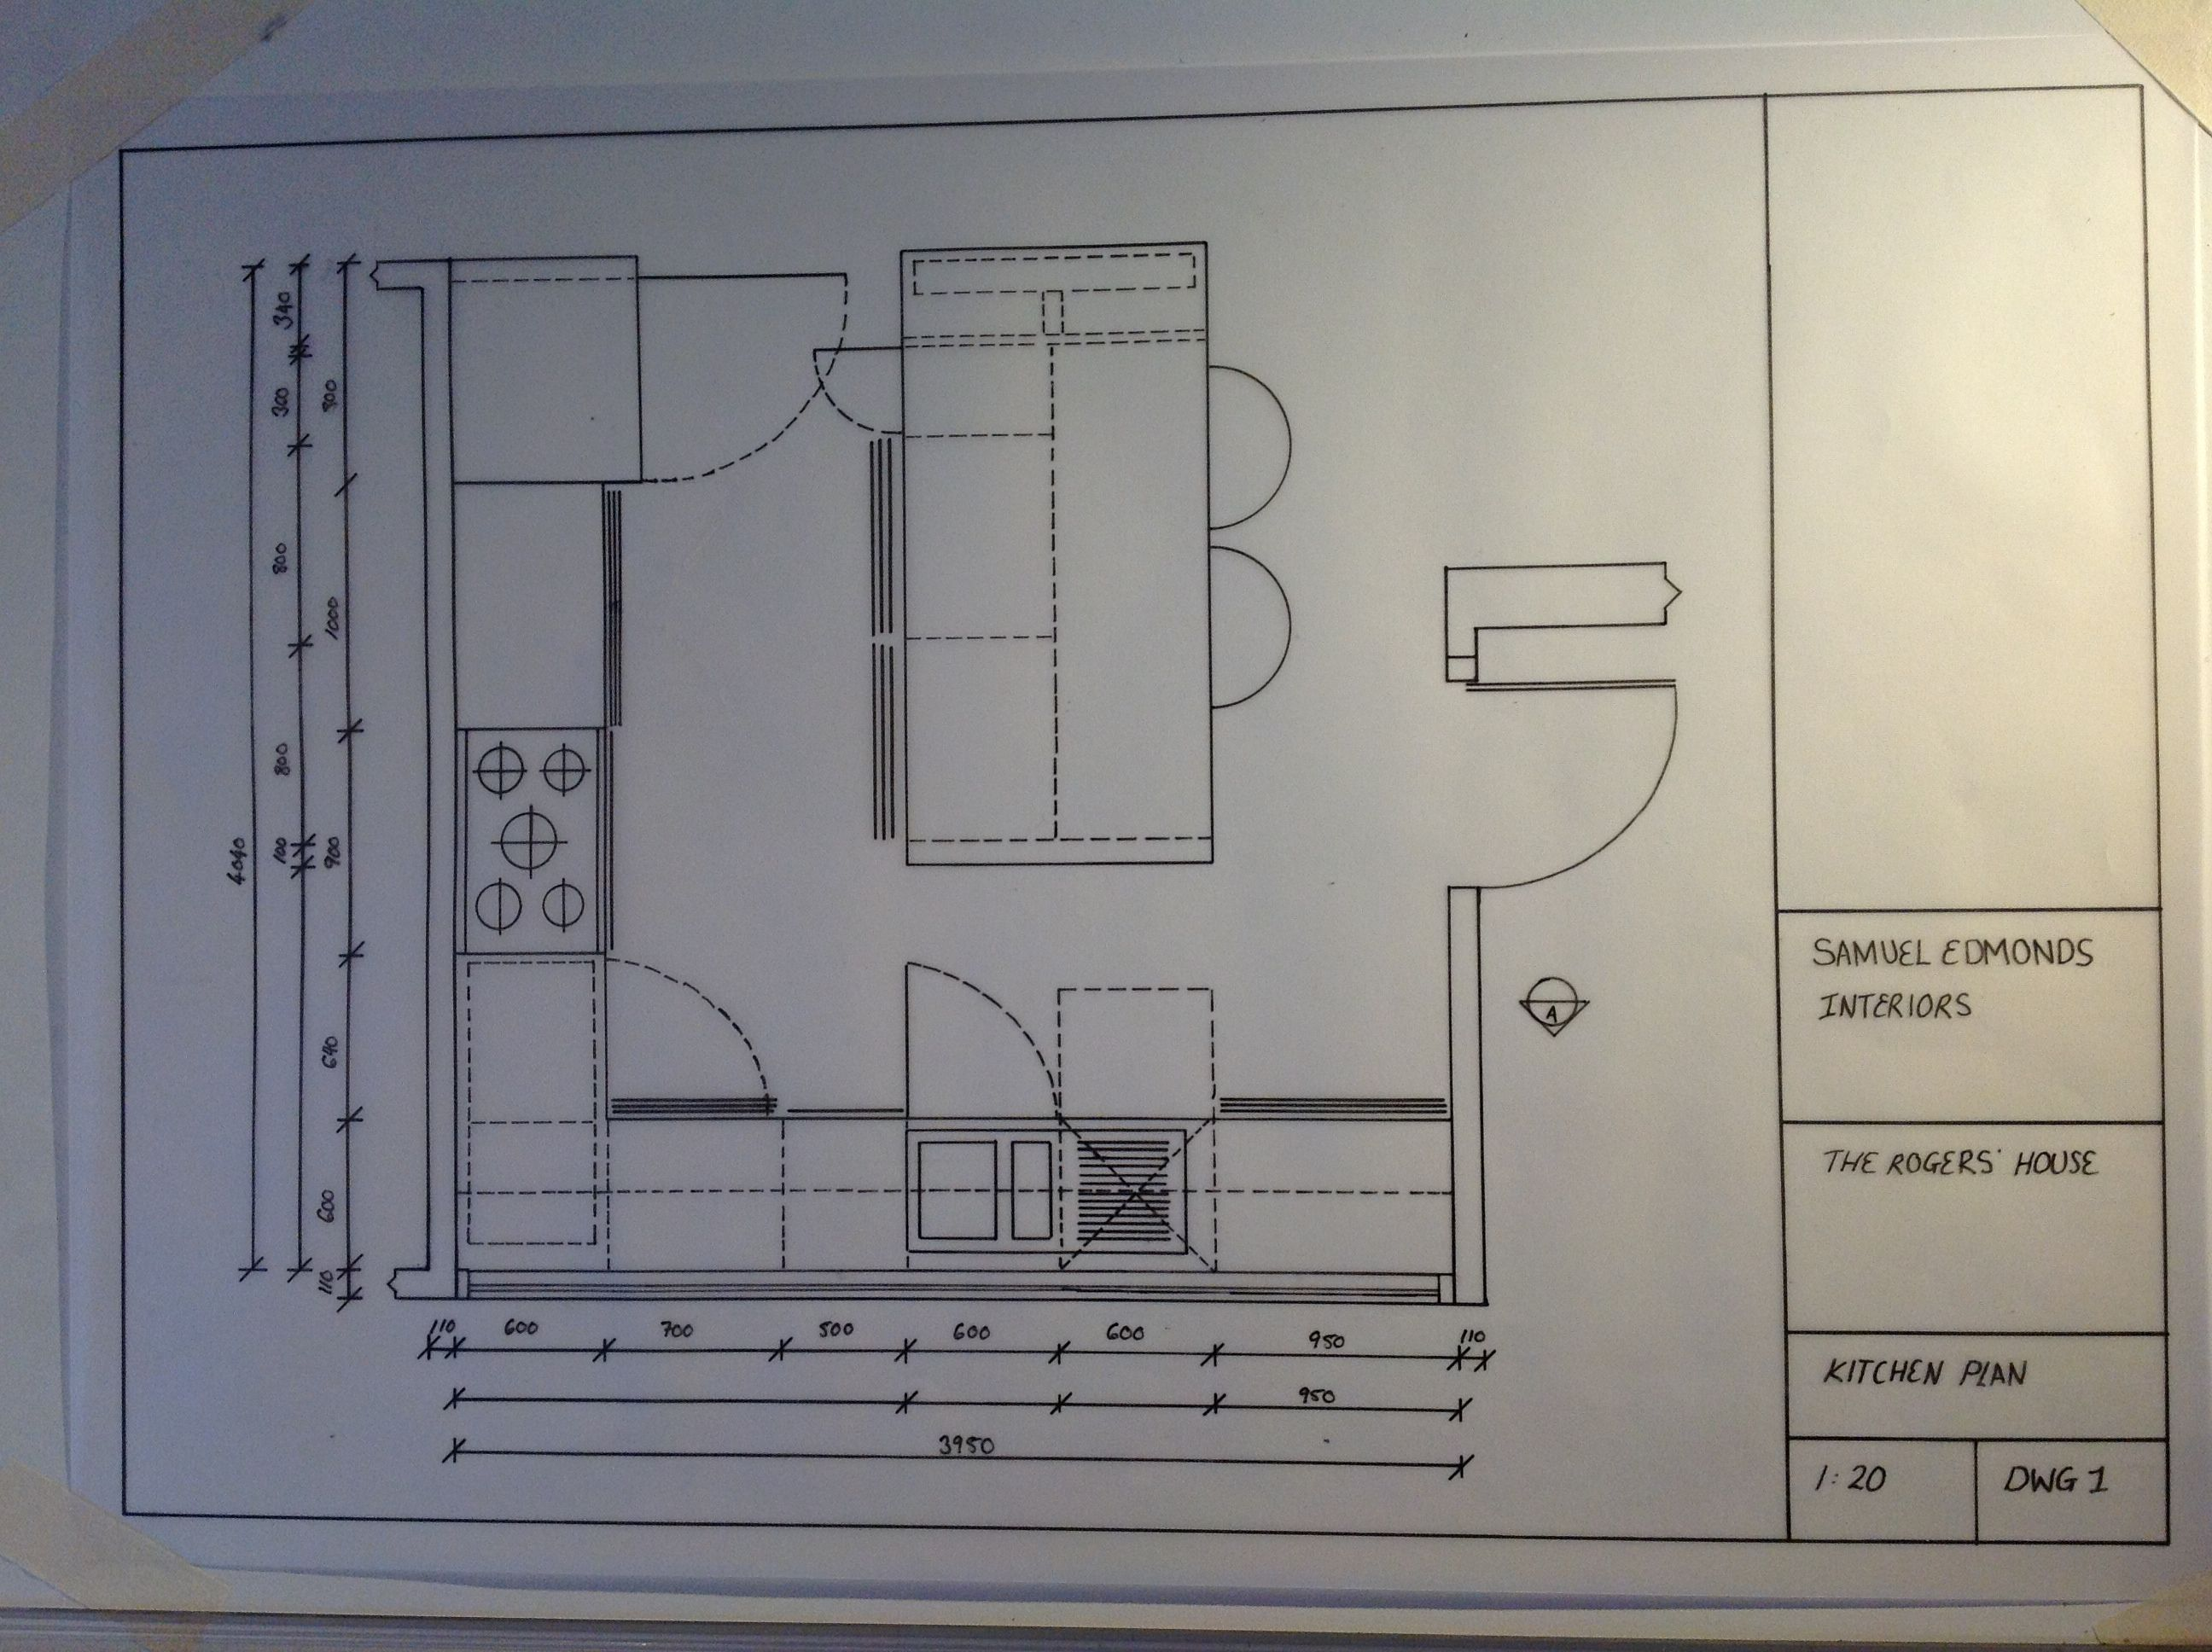 83 interior design drawing scale scale drawing for Draw kitchen floor plan